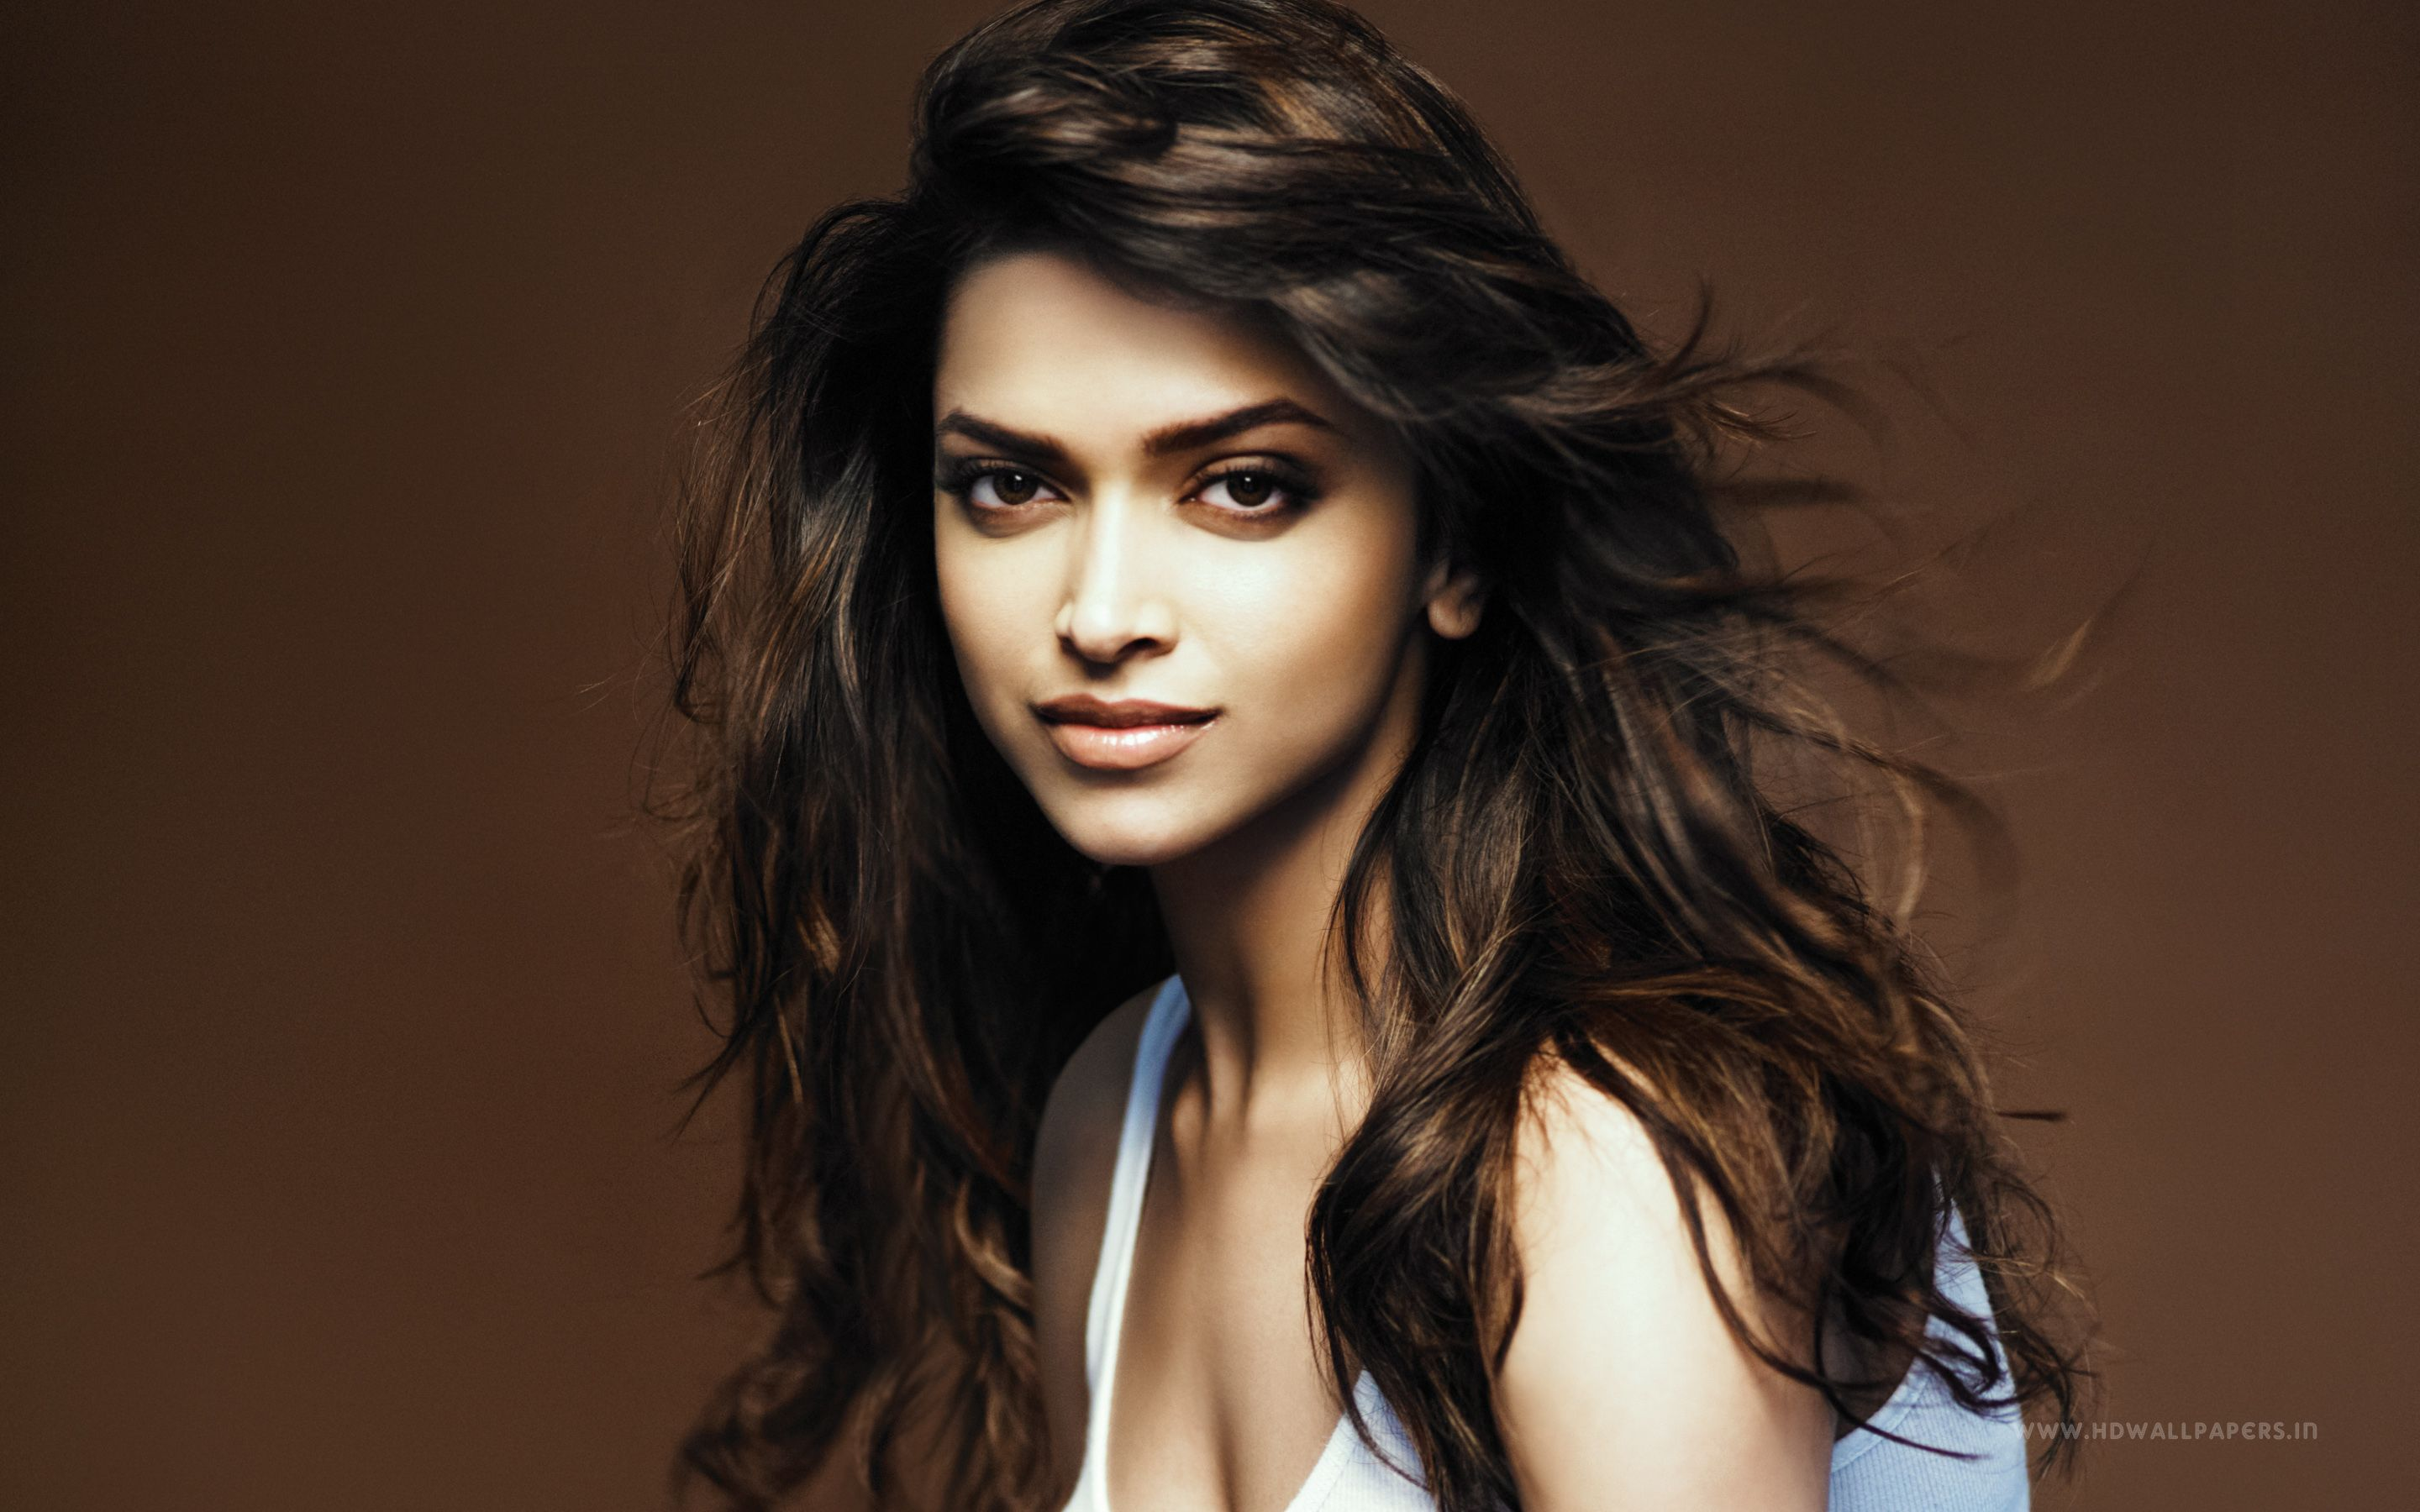 ggg hair styling deepika padukone wallpapers 1080p hd wallpapers desktop 4039